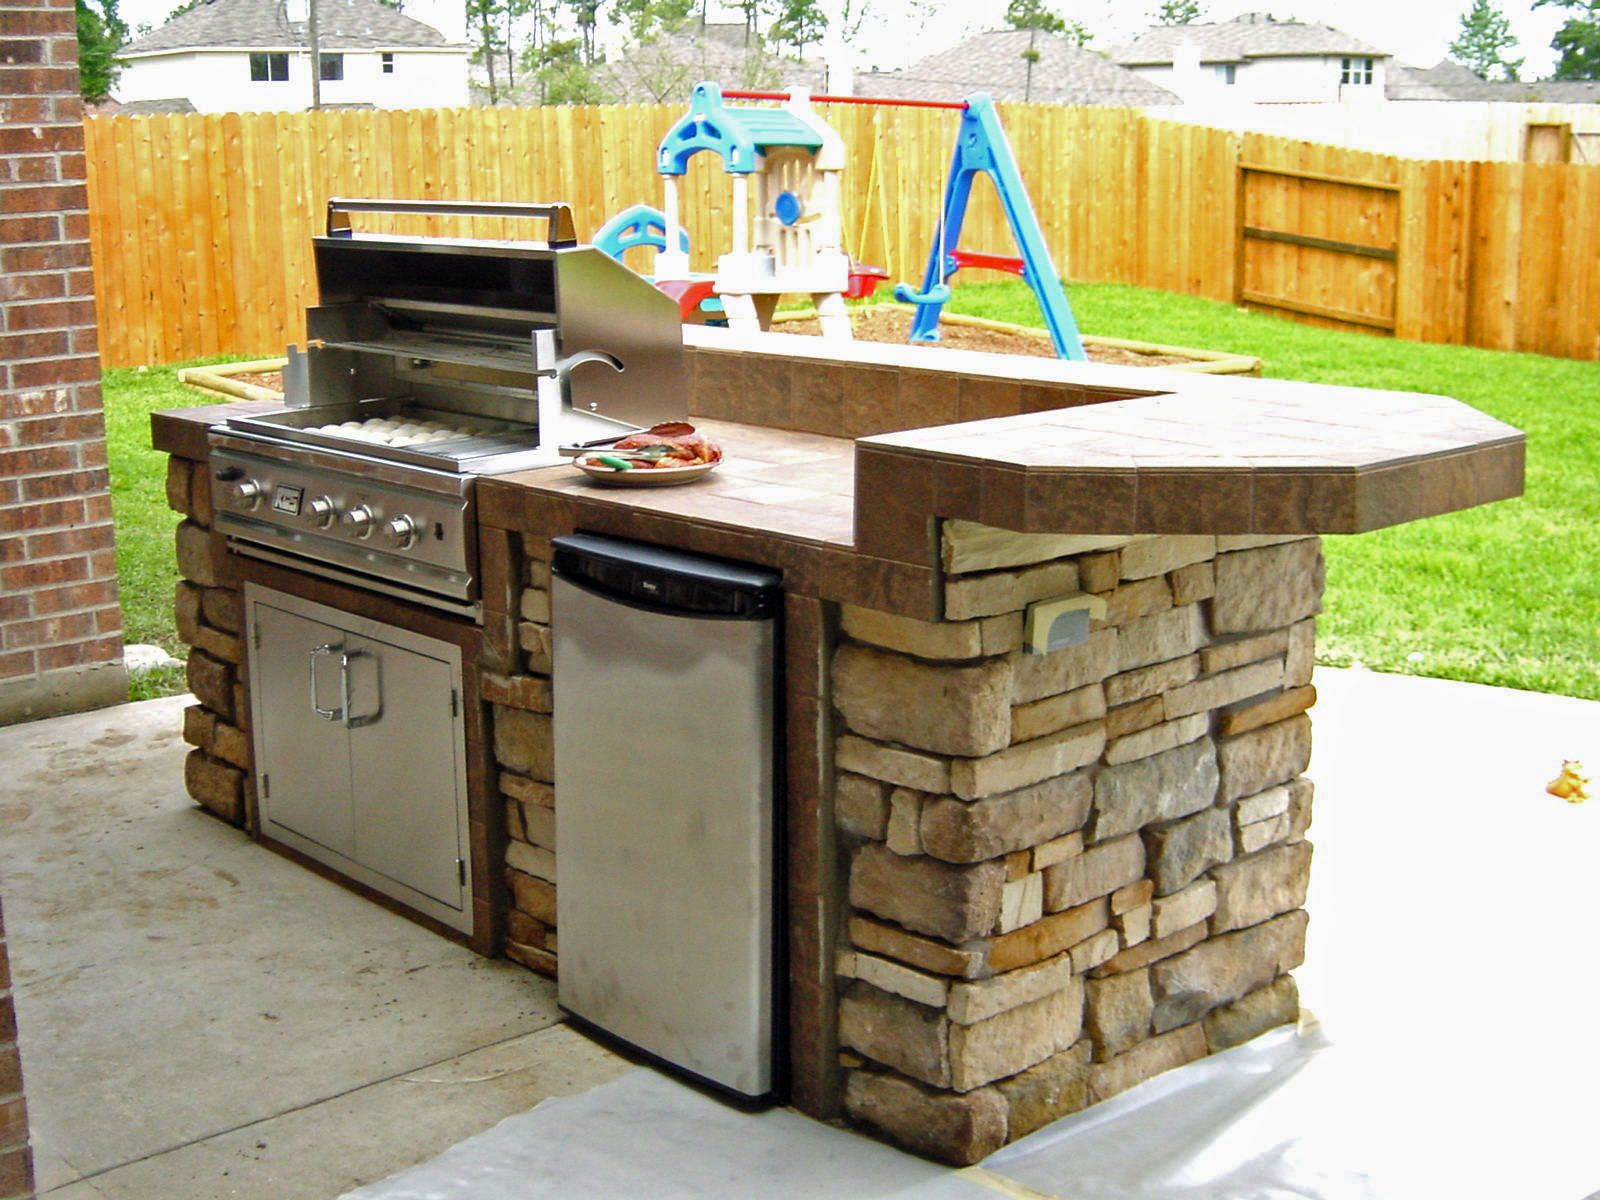 Uncategorized Outdoor Kitchens Designs best 25 outdoor kitchens ideas on pinterest backyard kitchen bar and grill patio